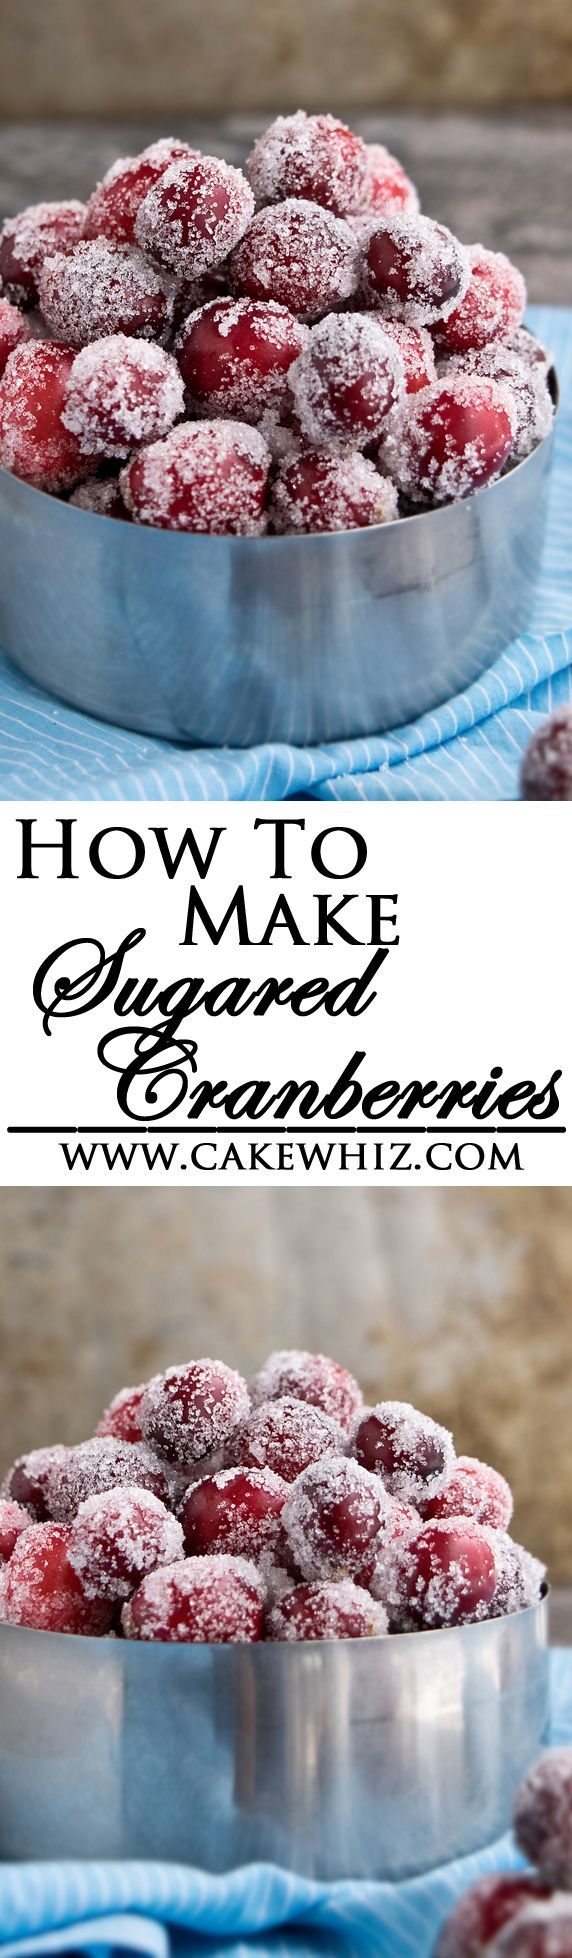 Learn the tips for making perfect SUGARED CRANBERRIES easily with no popping and cracking! Great for topping on cakes and cupcakes or just snacking during the Holiday season! From http://cakewhiz.com